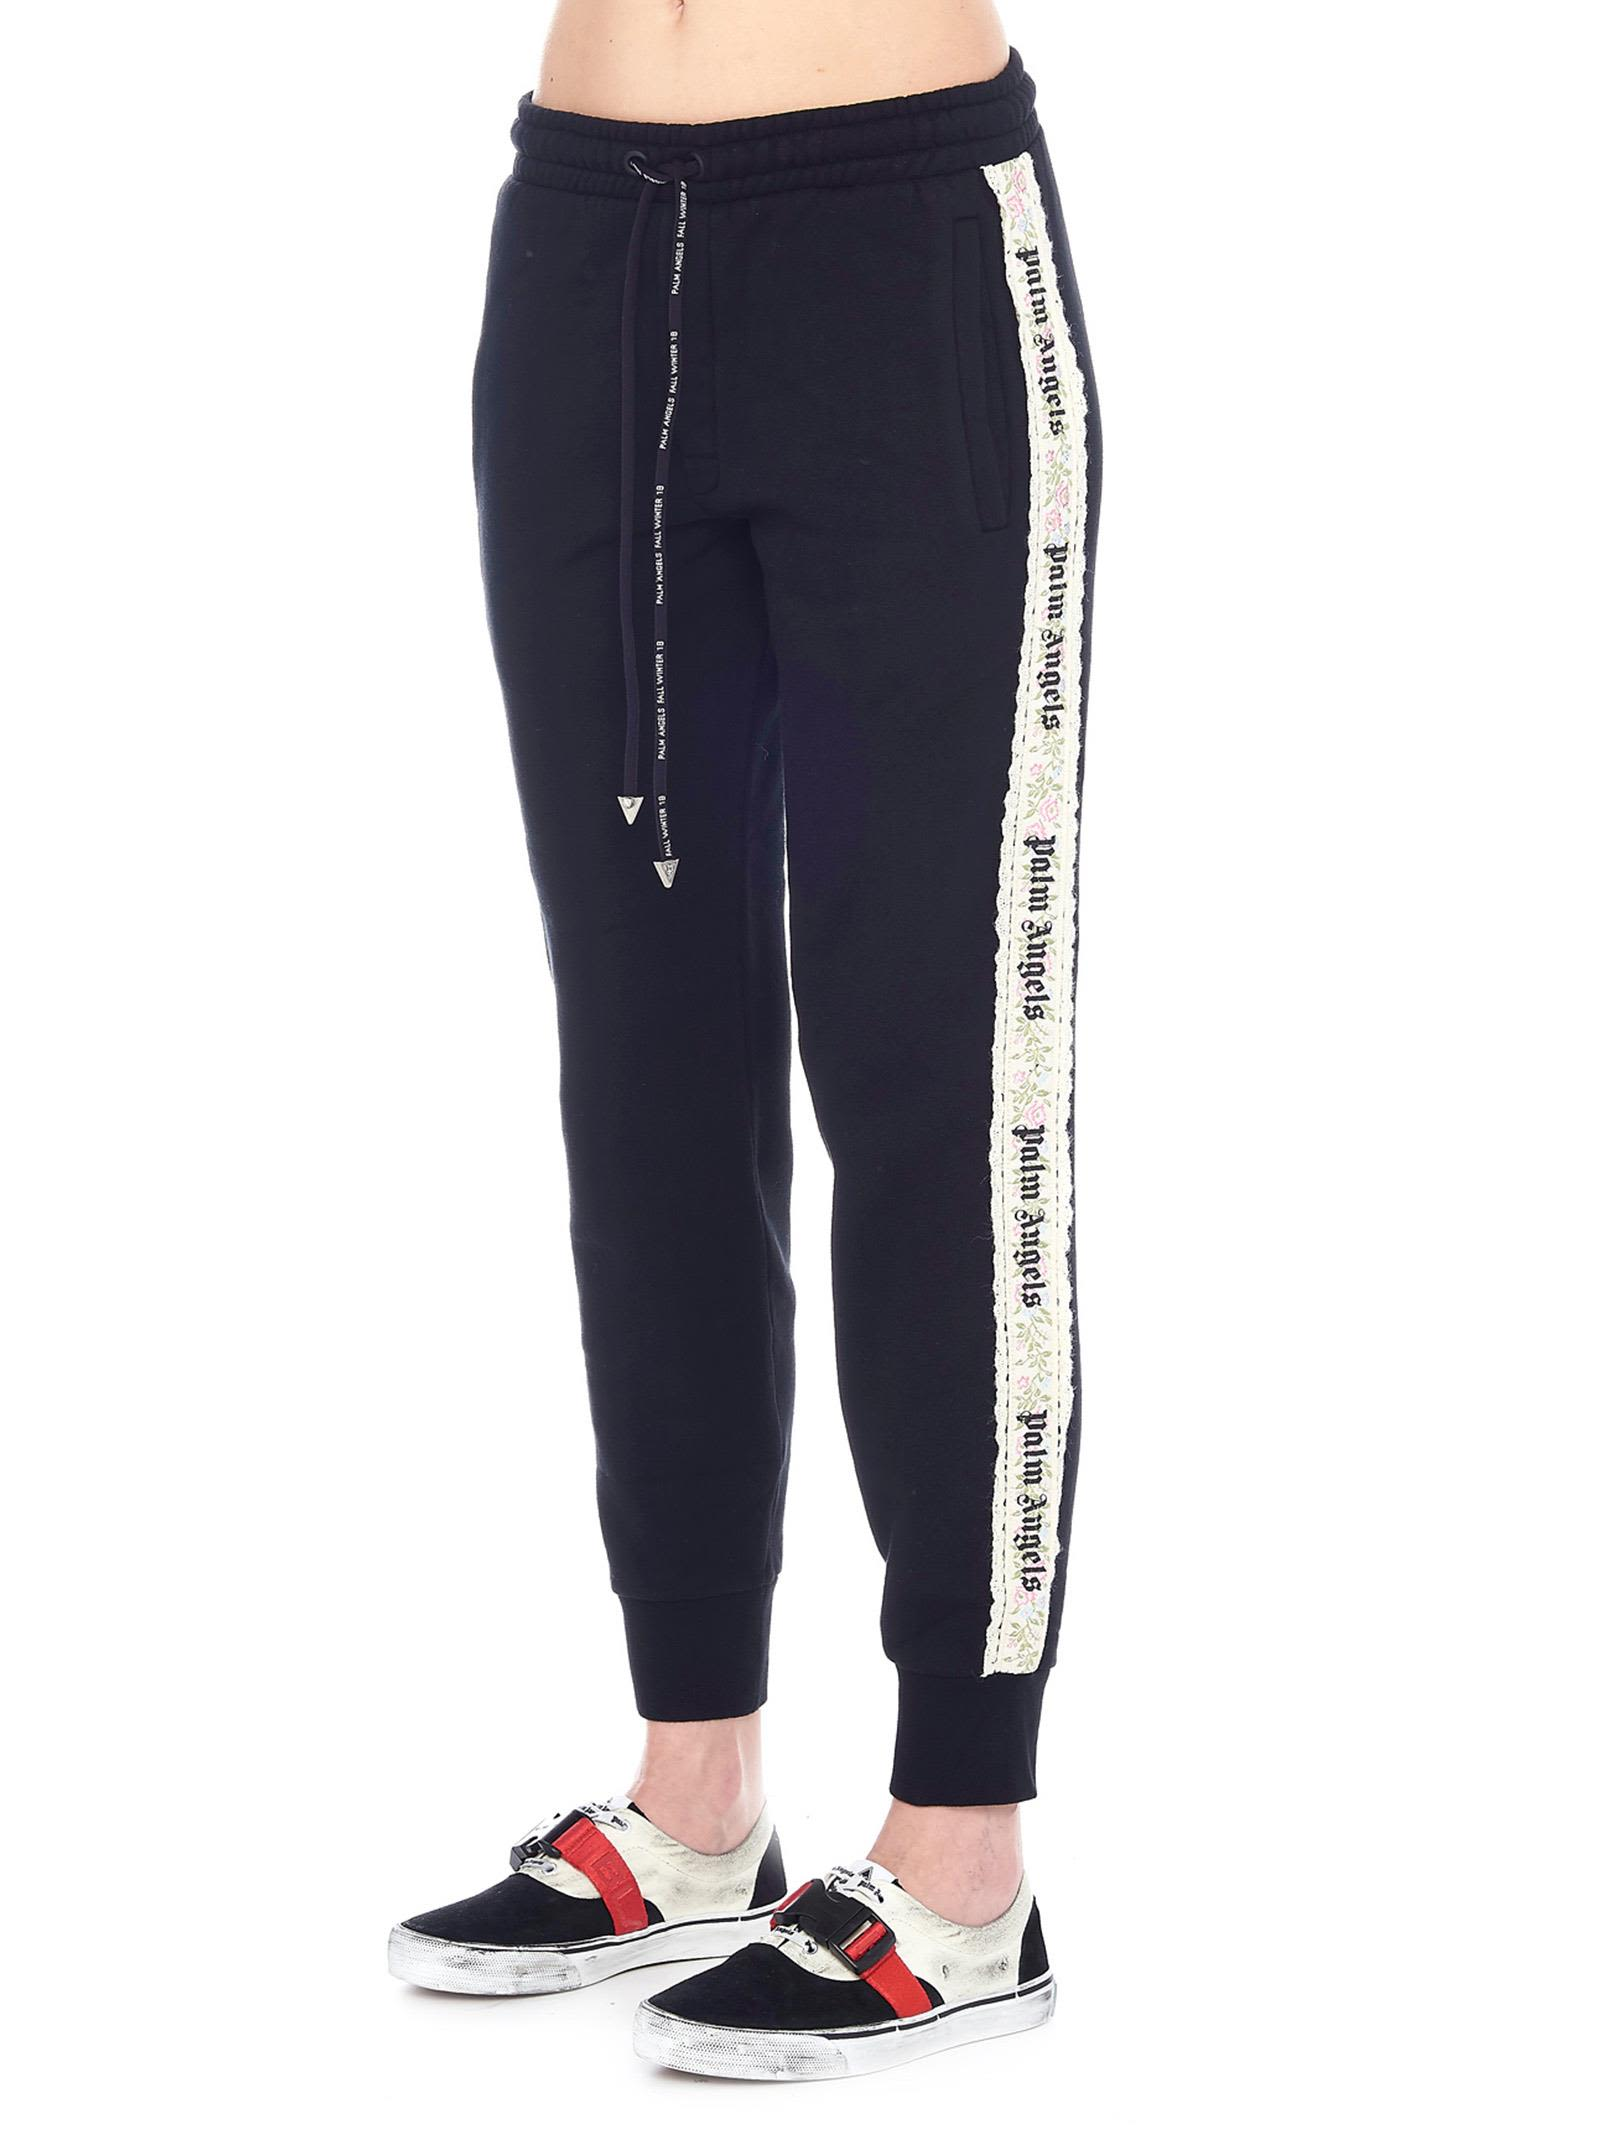 Italist Best Price In The Market For Palm Angels Pants Winter 10 Flower Tape Black